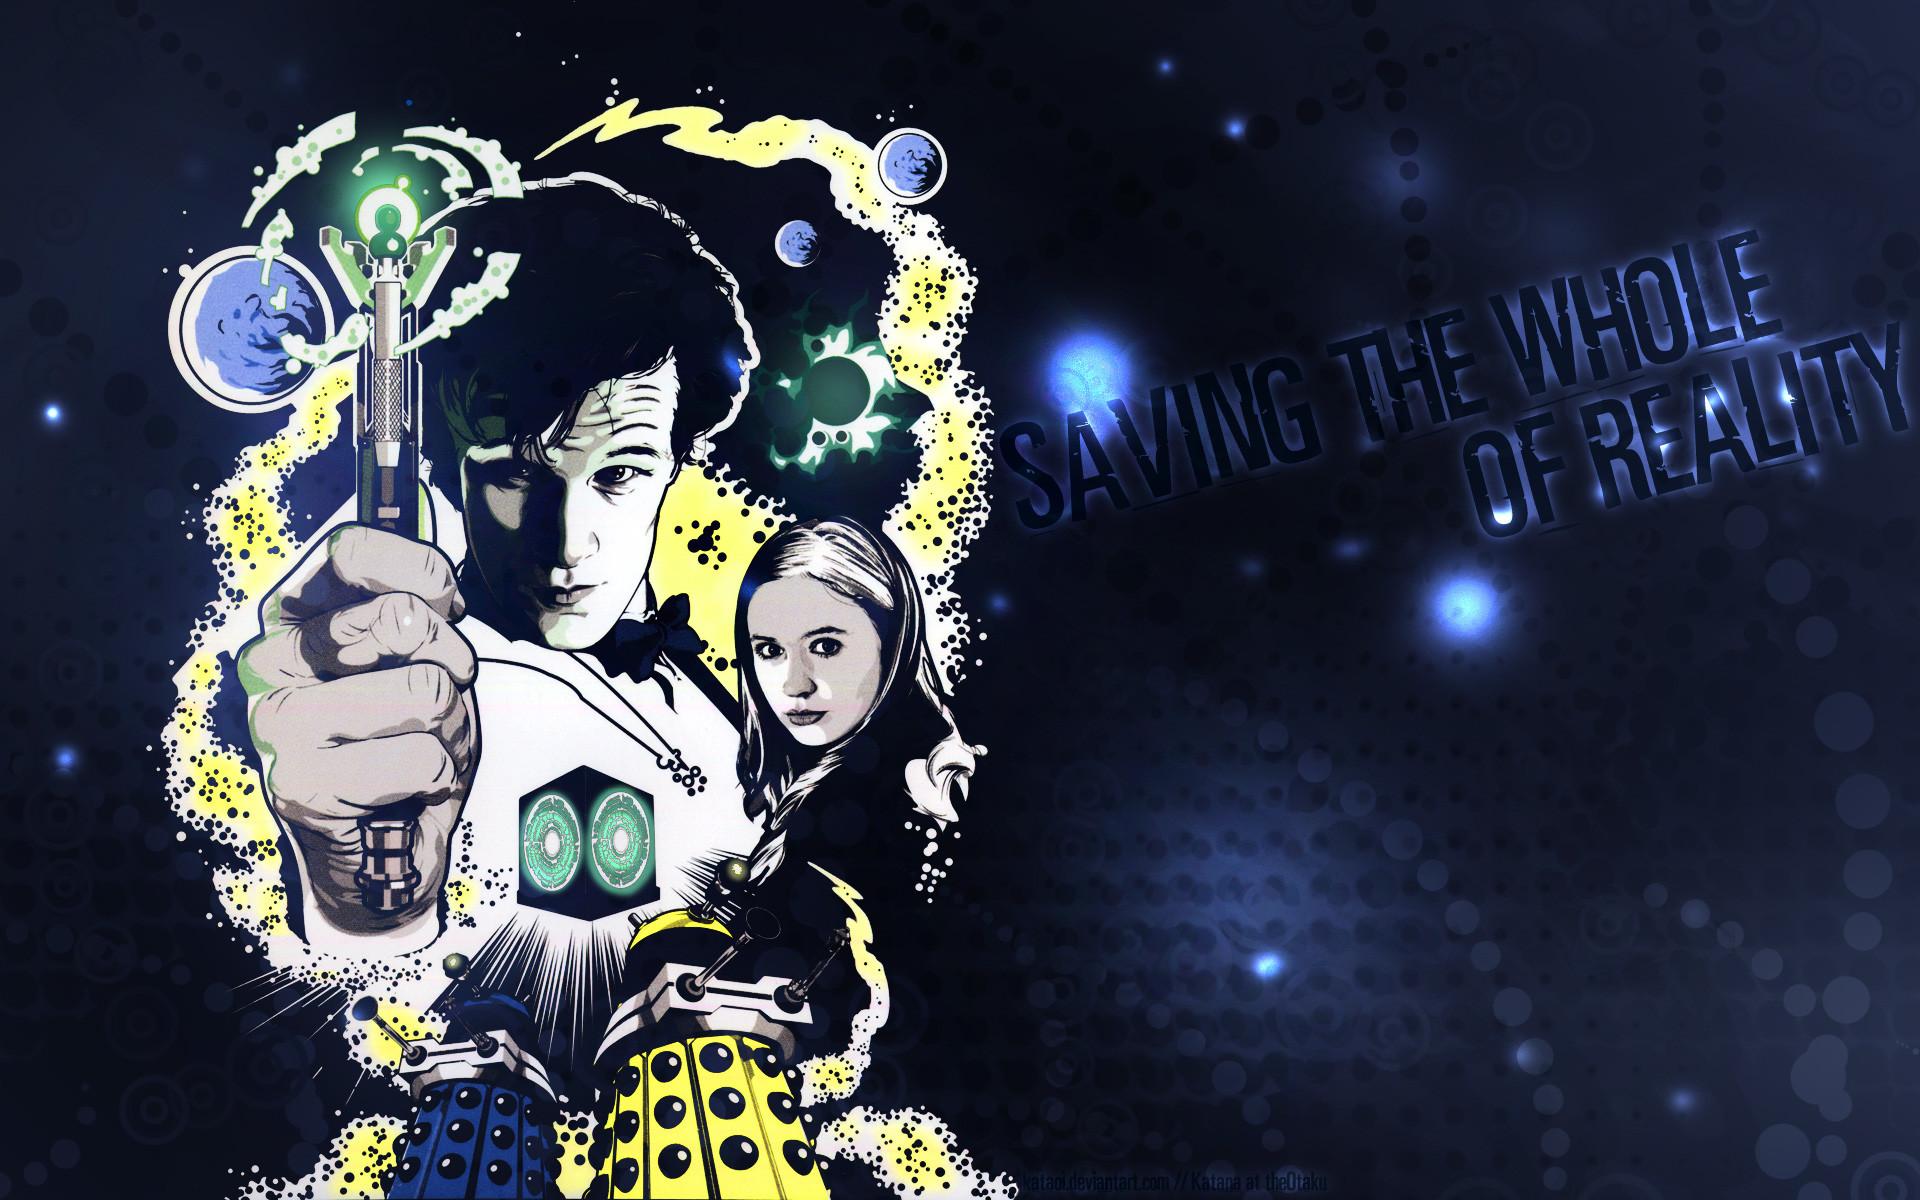 1920x1200 Doctor Who Sonic Screwdriver Dalek sci-fi wallpaper |  | 70716 |  WallpaperUP